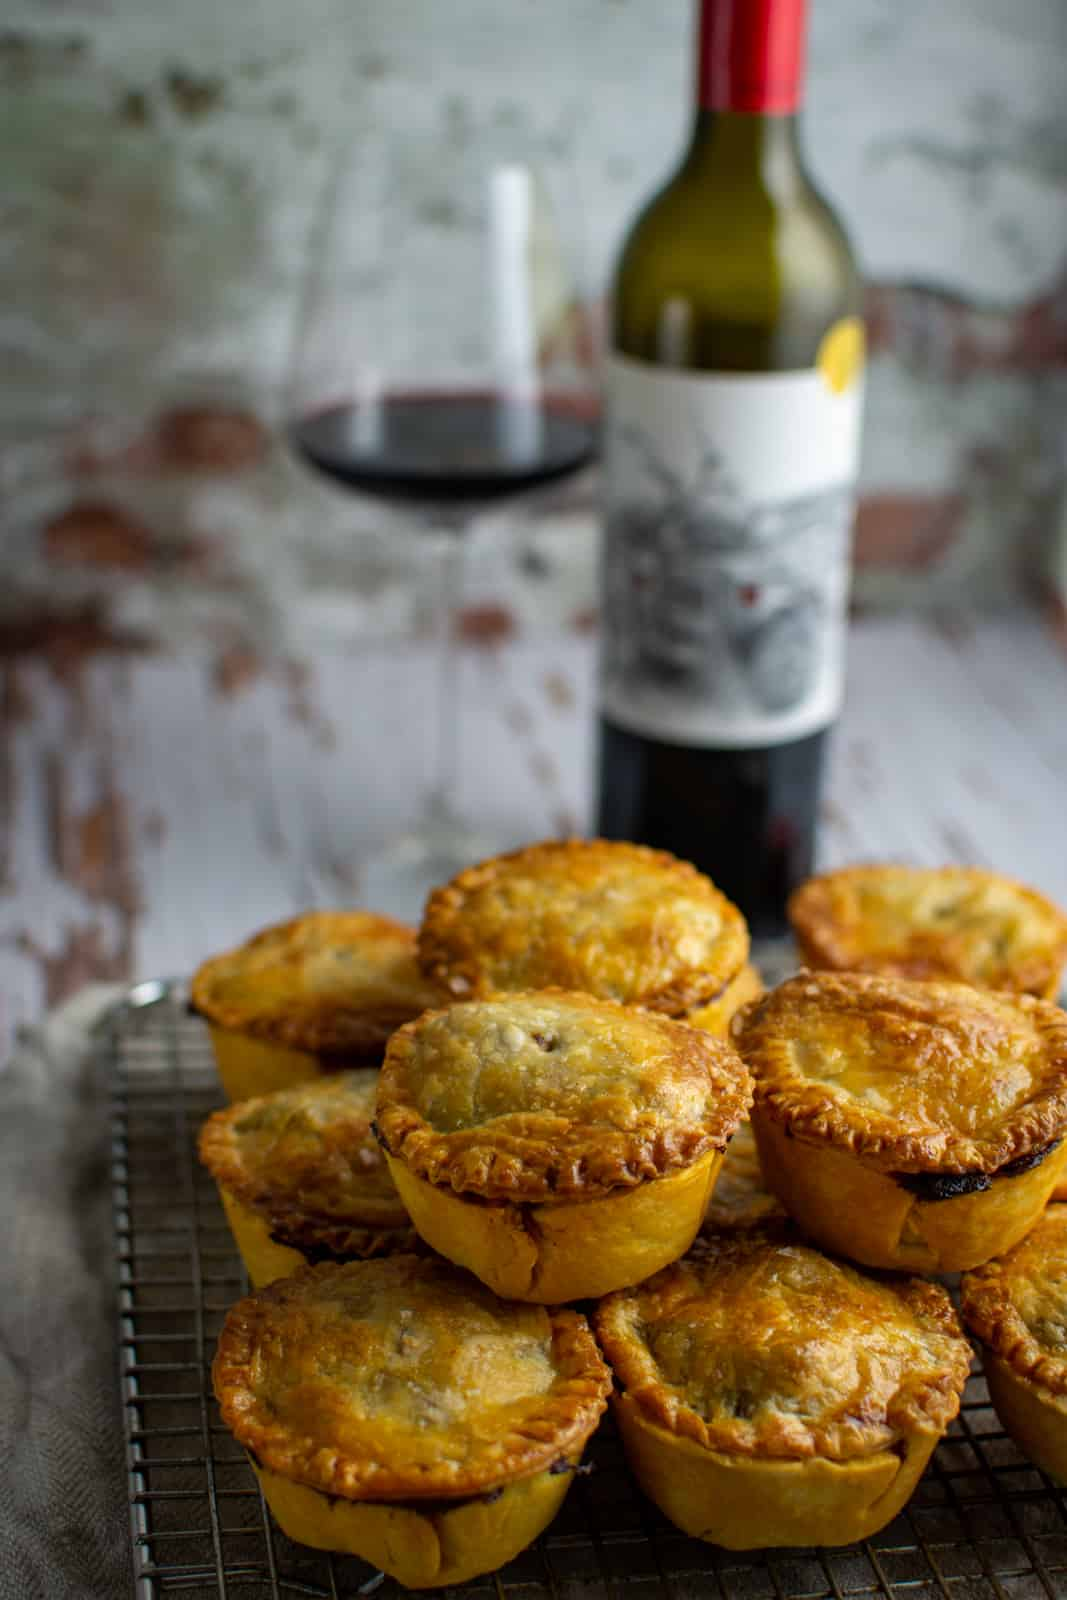 beef pies on top of each other on wire rack - wine in background